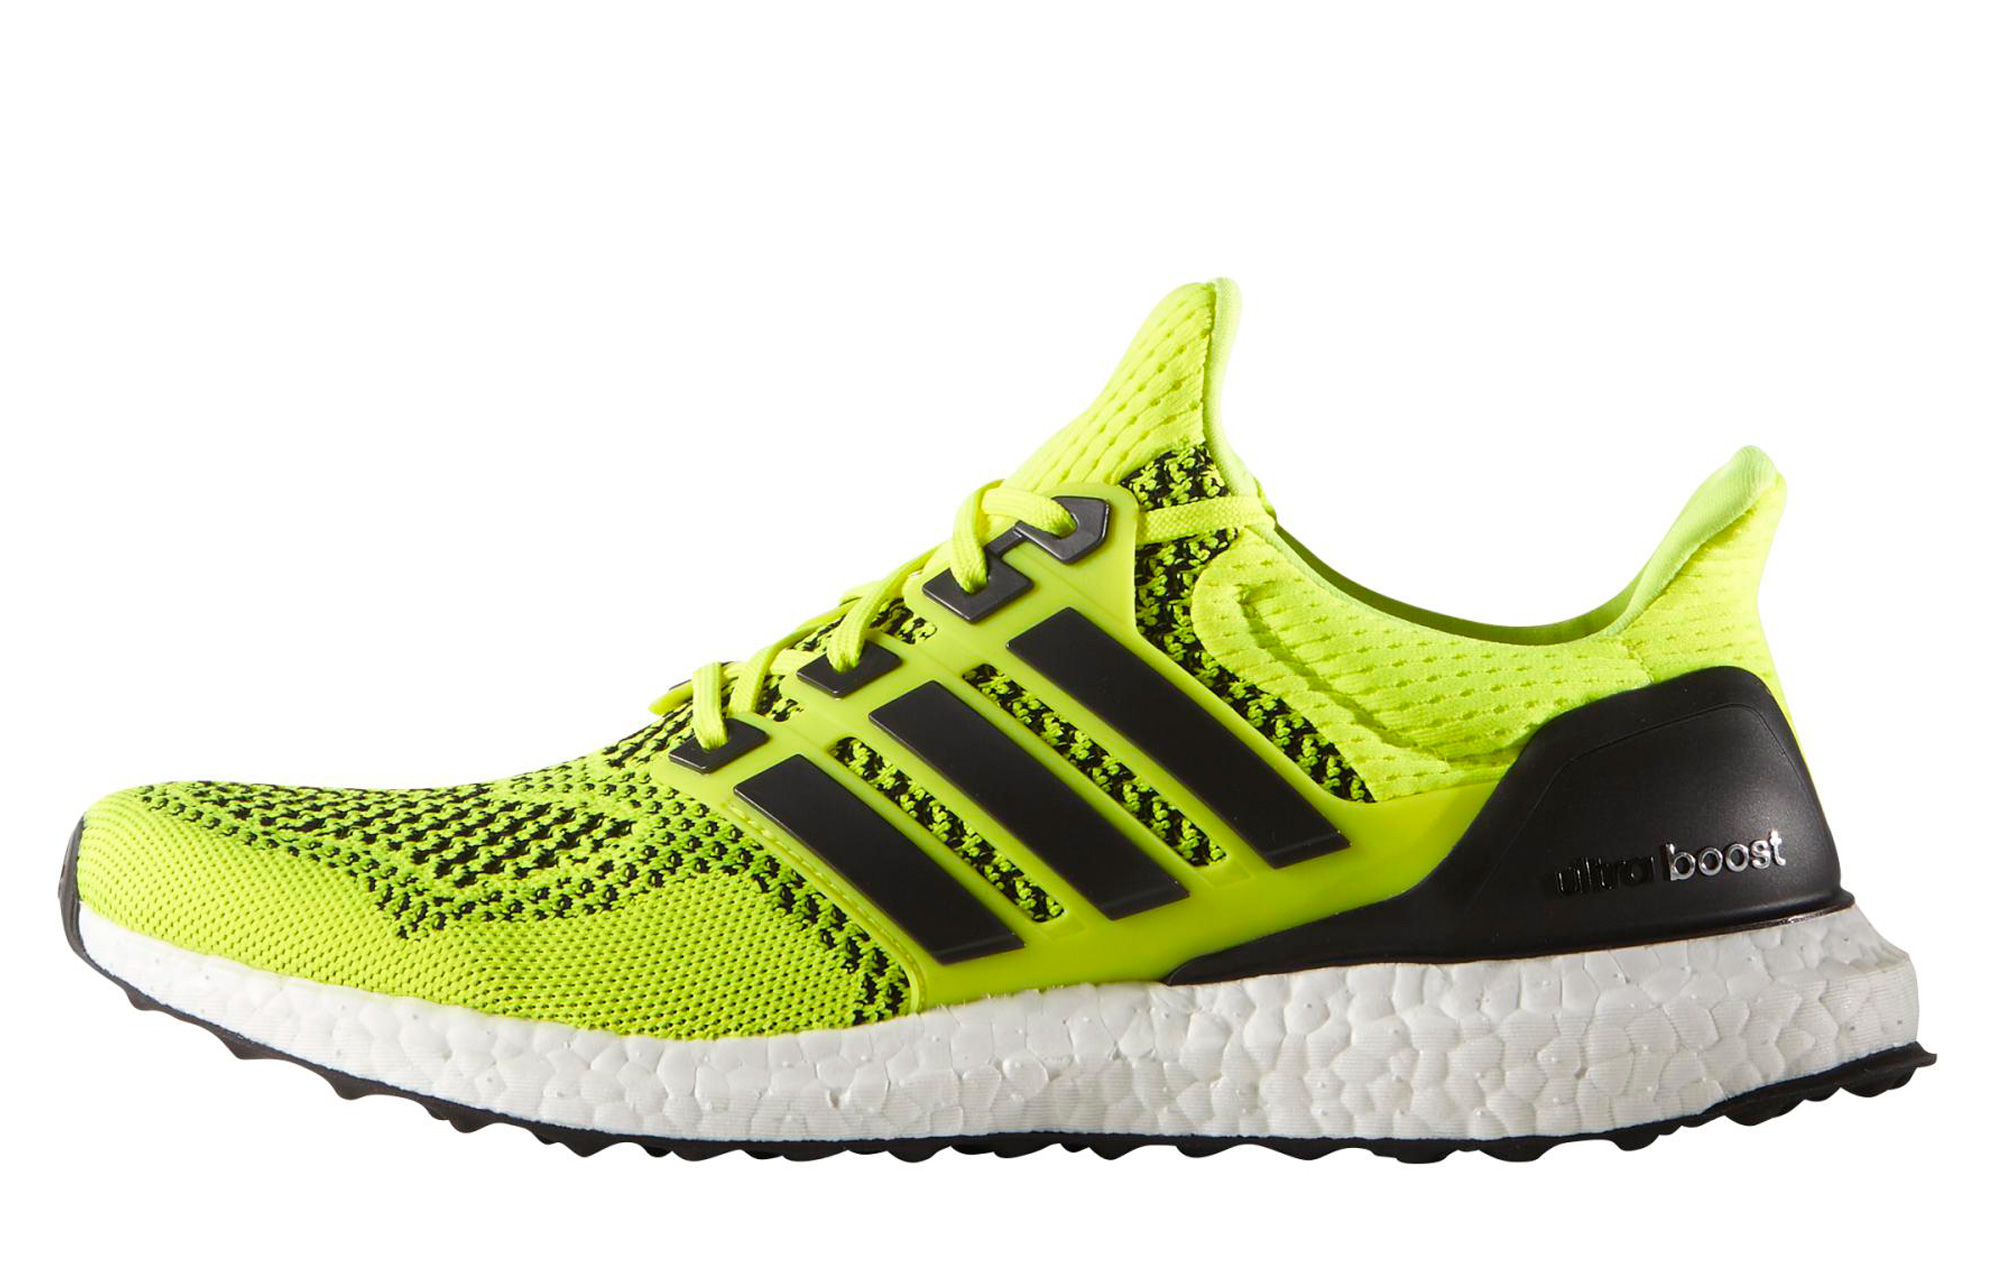 adidas ultra boost jaune. Black Bedroom Furniture Sets. Home Design Ideas